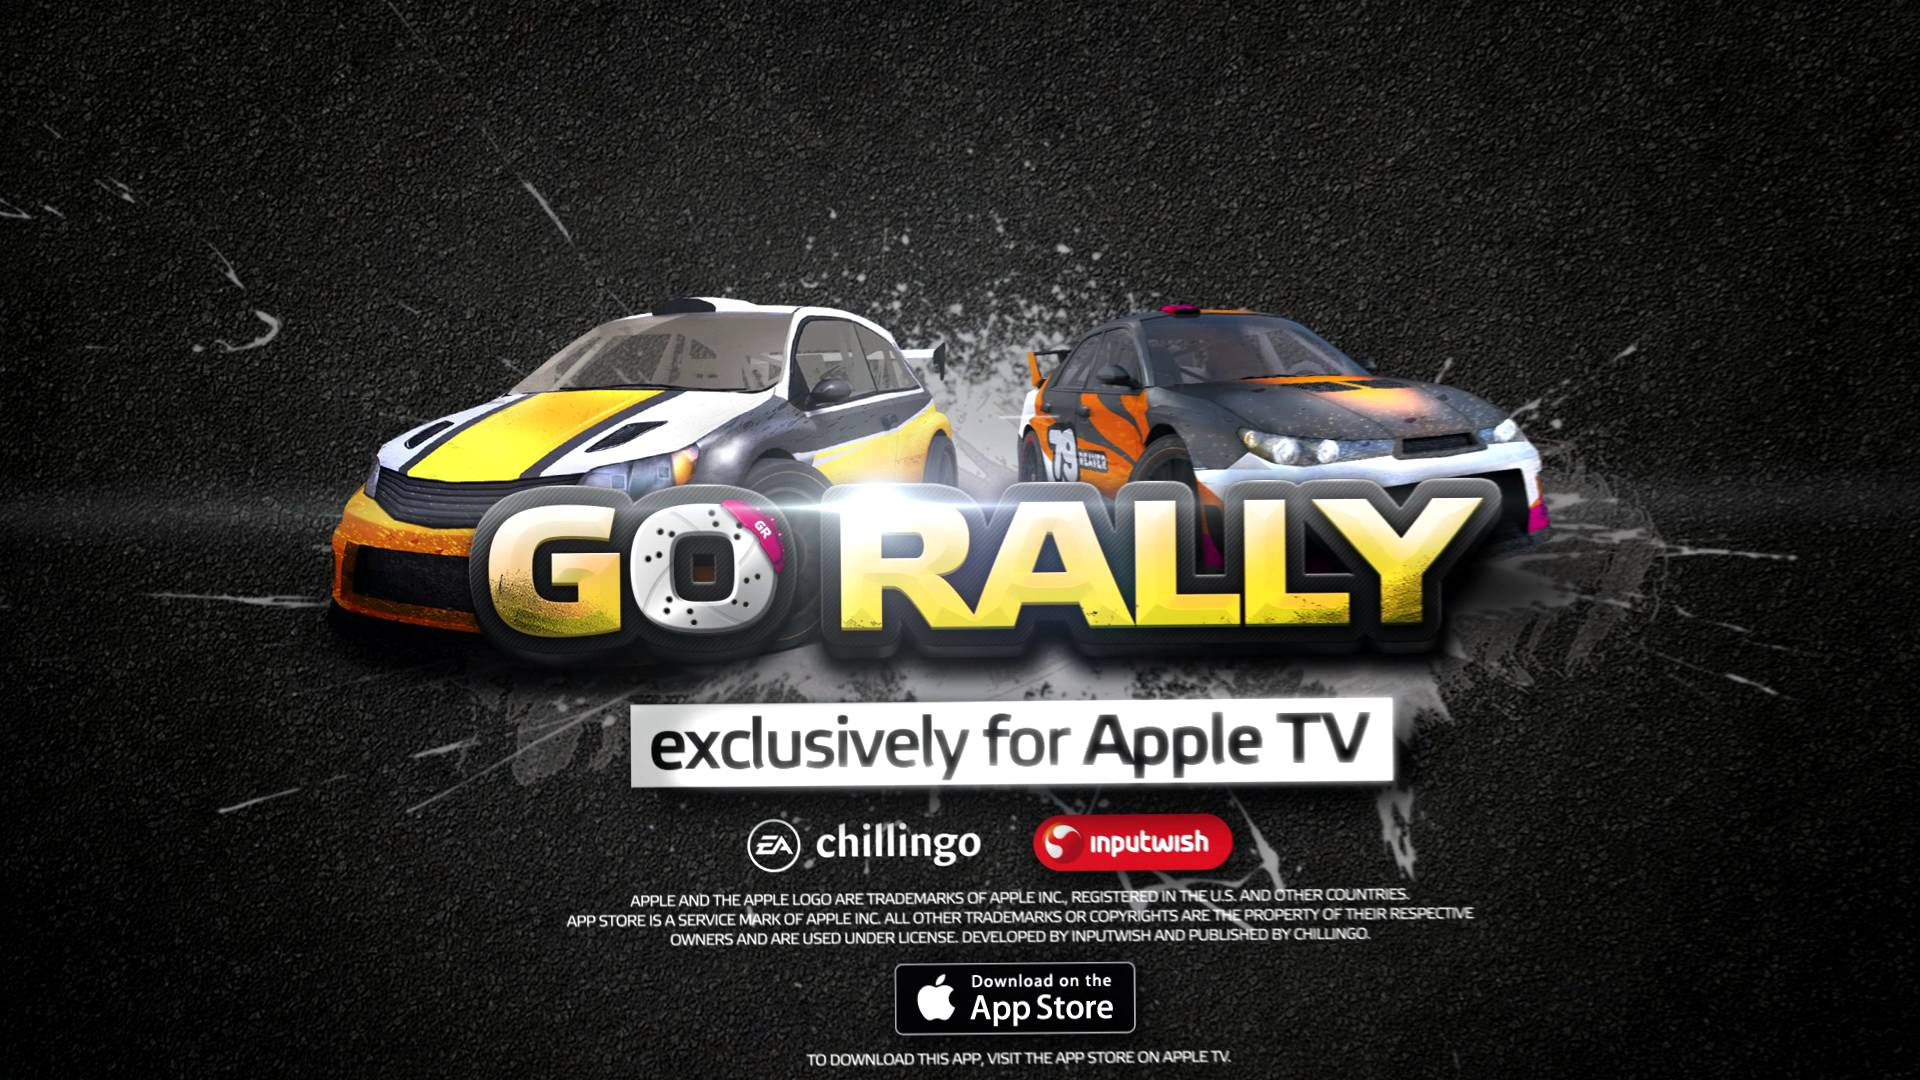 You can go rally on iPad and iPhone next week when Go Rally skids on to the App Store